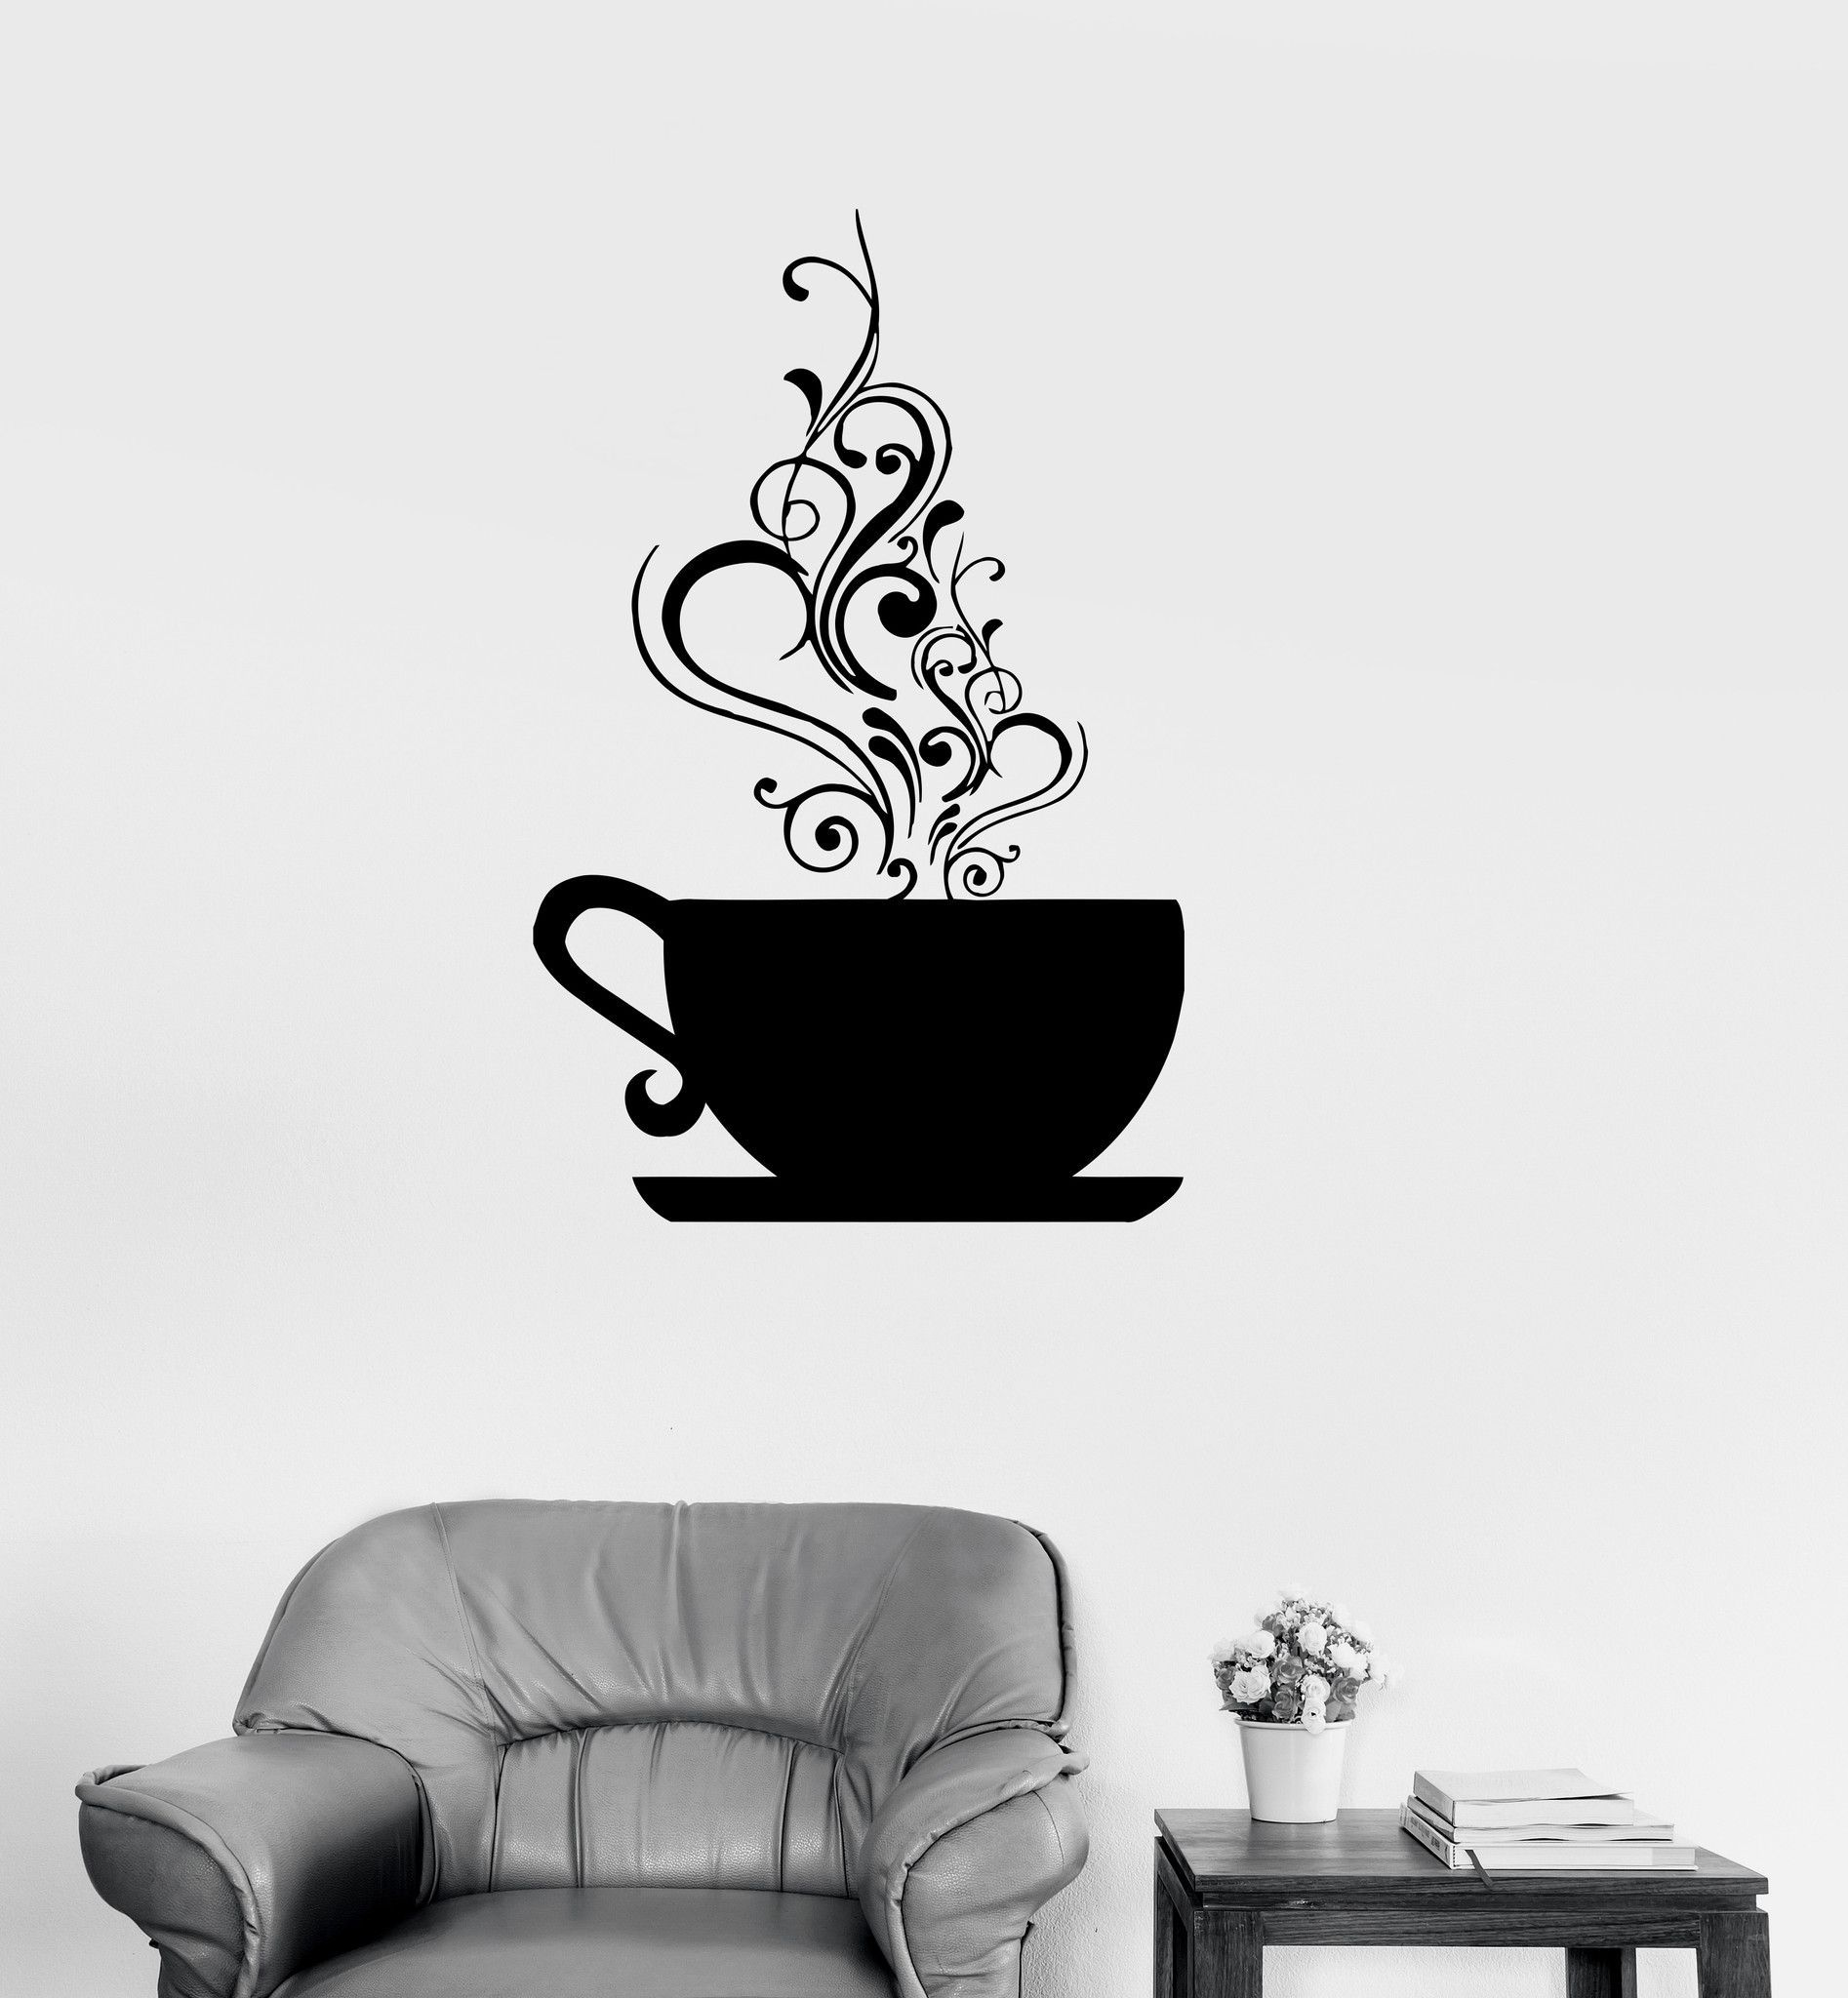 Vinyl decal coffee cup cafe tea kitchen decor wall stickers mural vinyl decal coffee cup cafe tea kitchen decor wall stickers mural ig188 amipublicfo Images